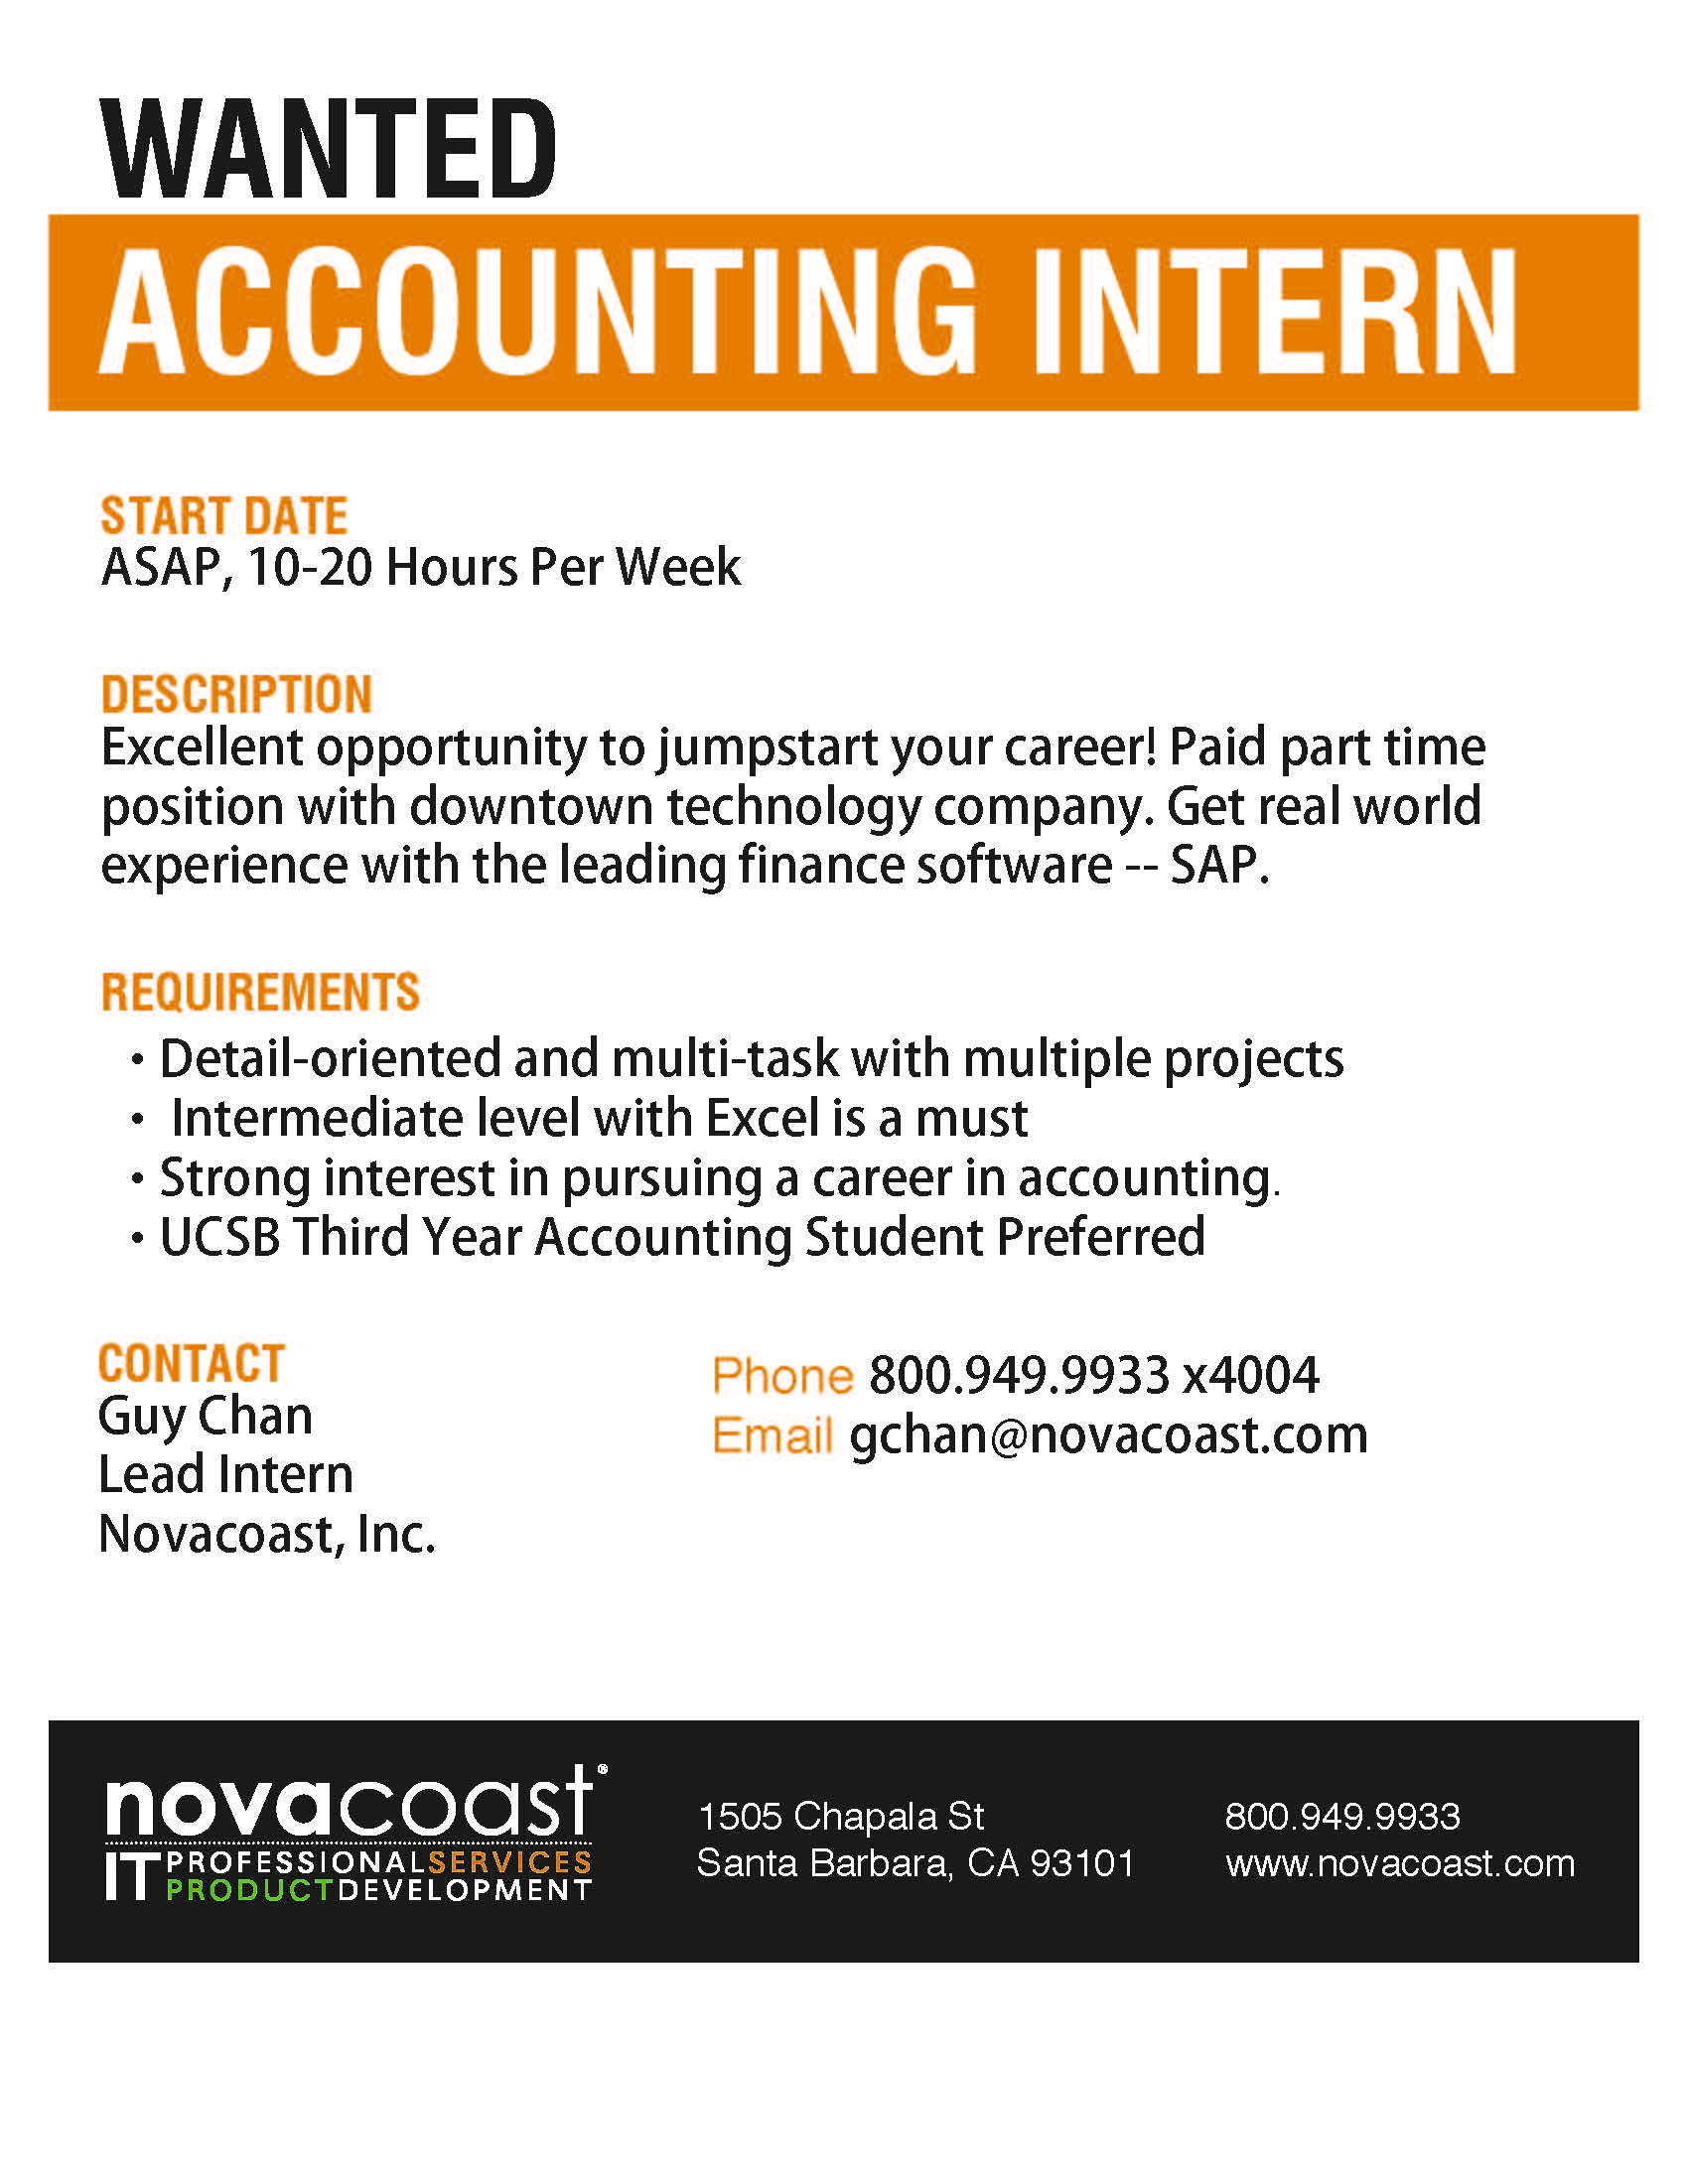 Letter From Santa And Father Christmas Letters Magical Novocoast – Wanted Accounting Intern Santa Barbara